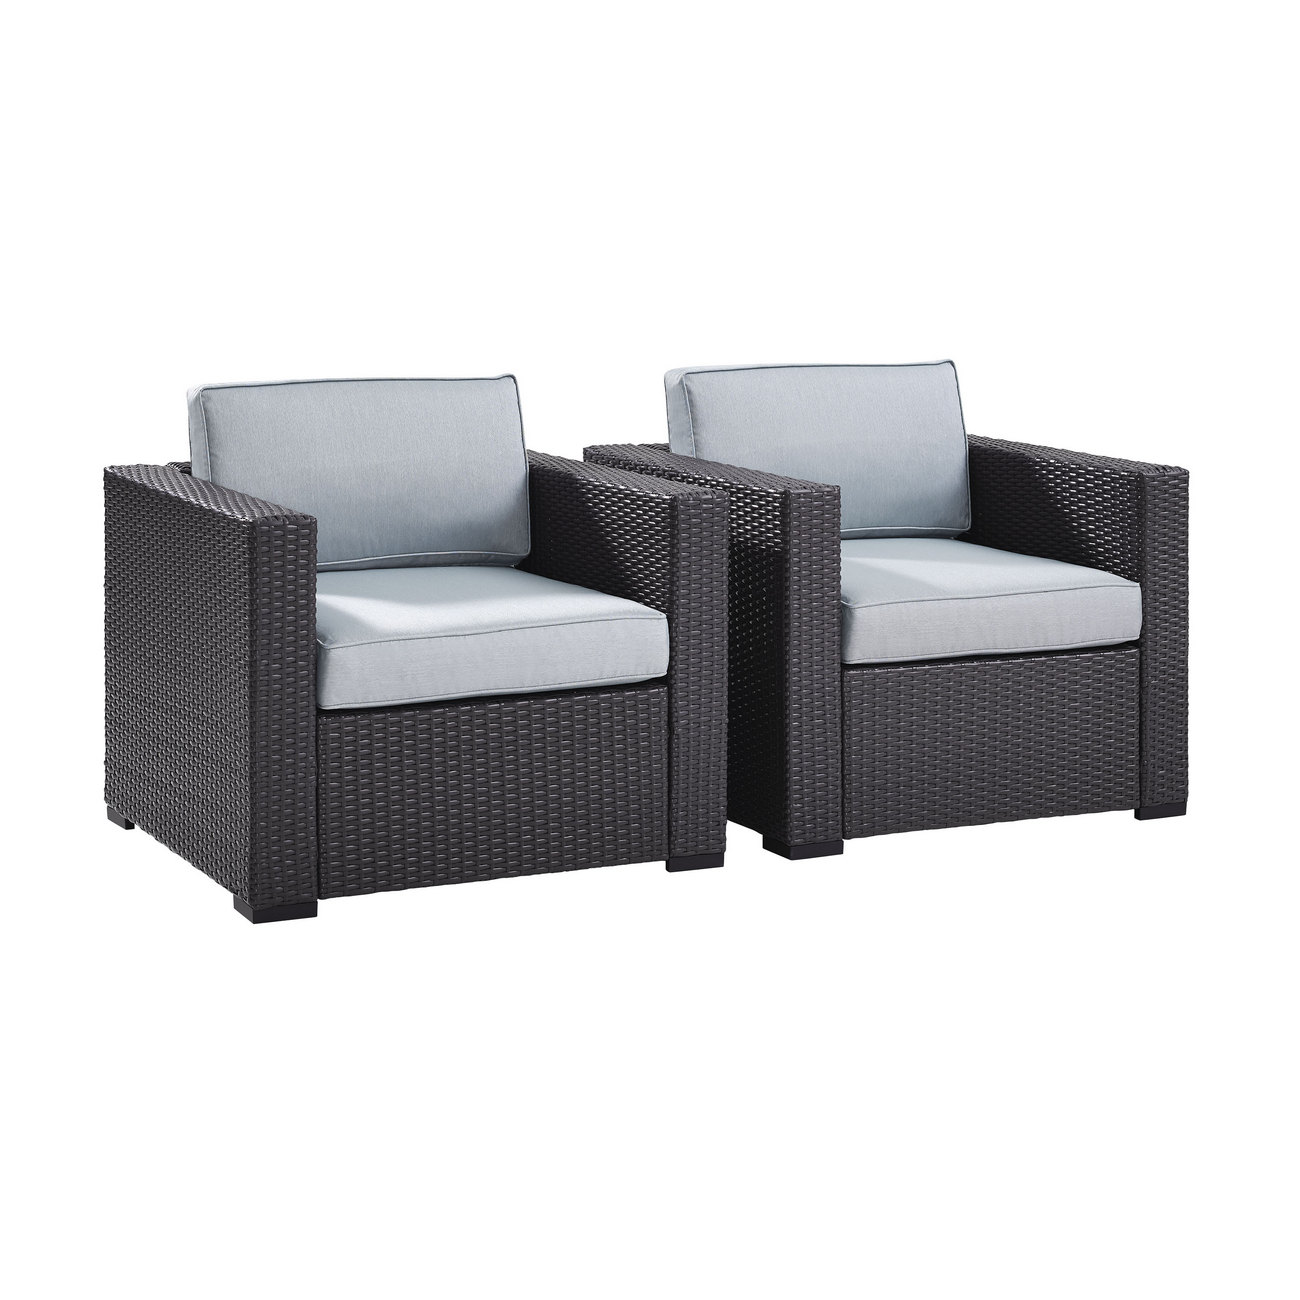 Biscayne 2 Person Outdoor Wicker Seating Set in Mist - Two Outdoor Wicker Chairs - Crosley KO70103BR-MI